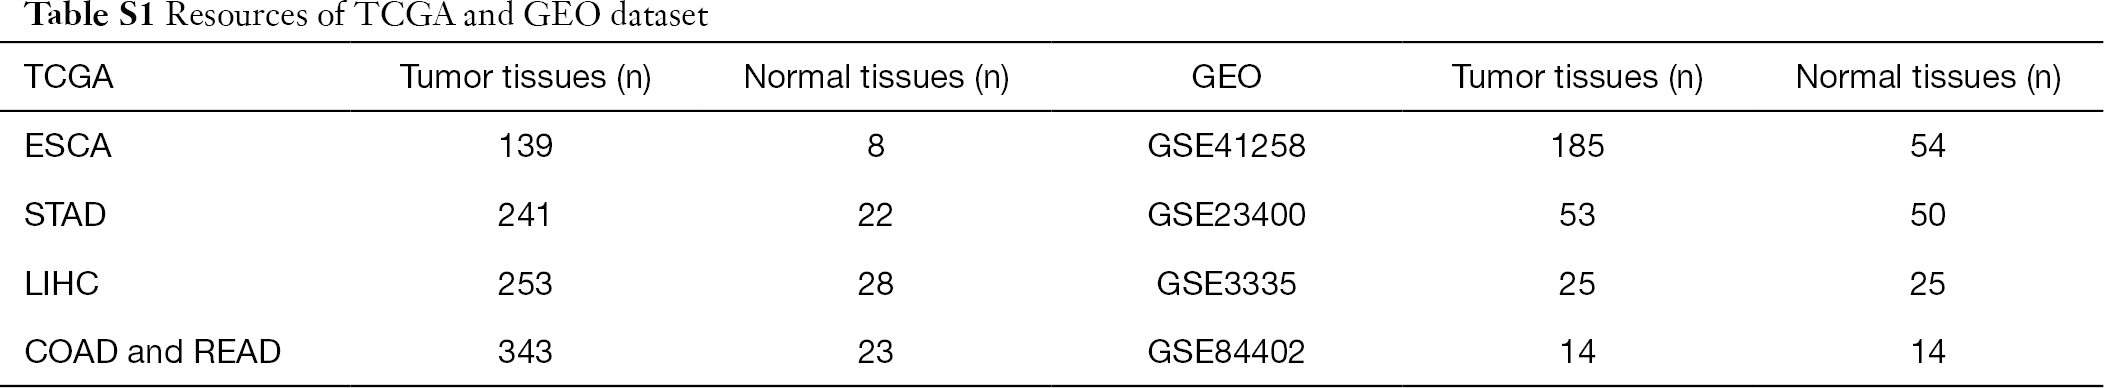 Table S1